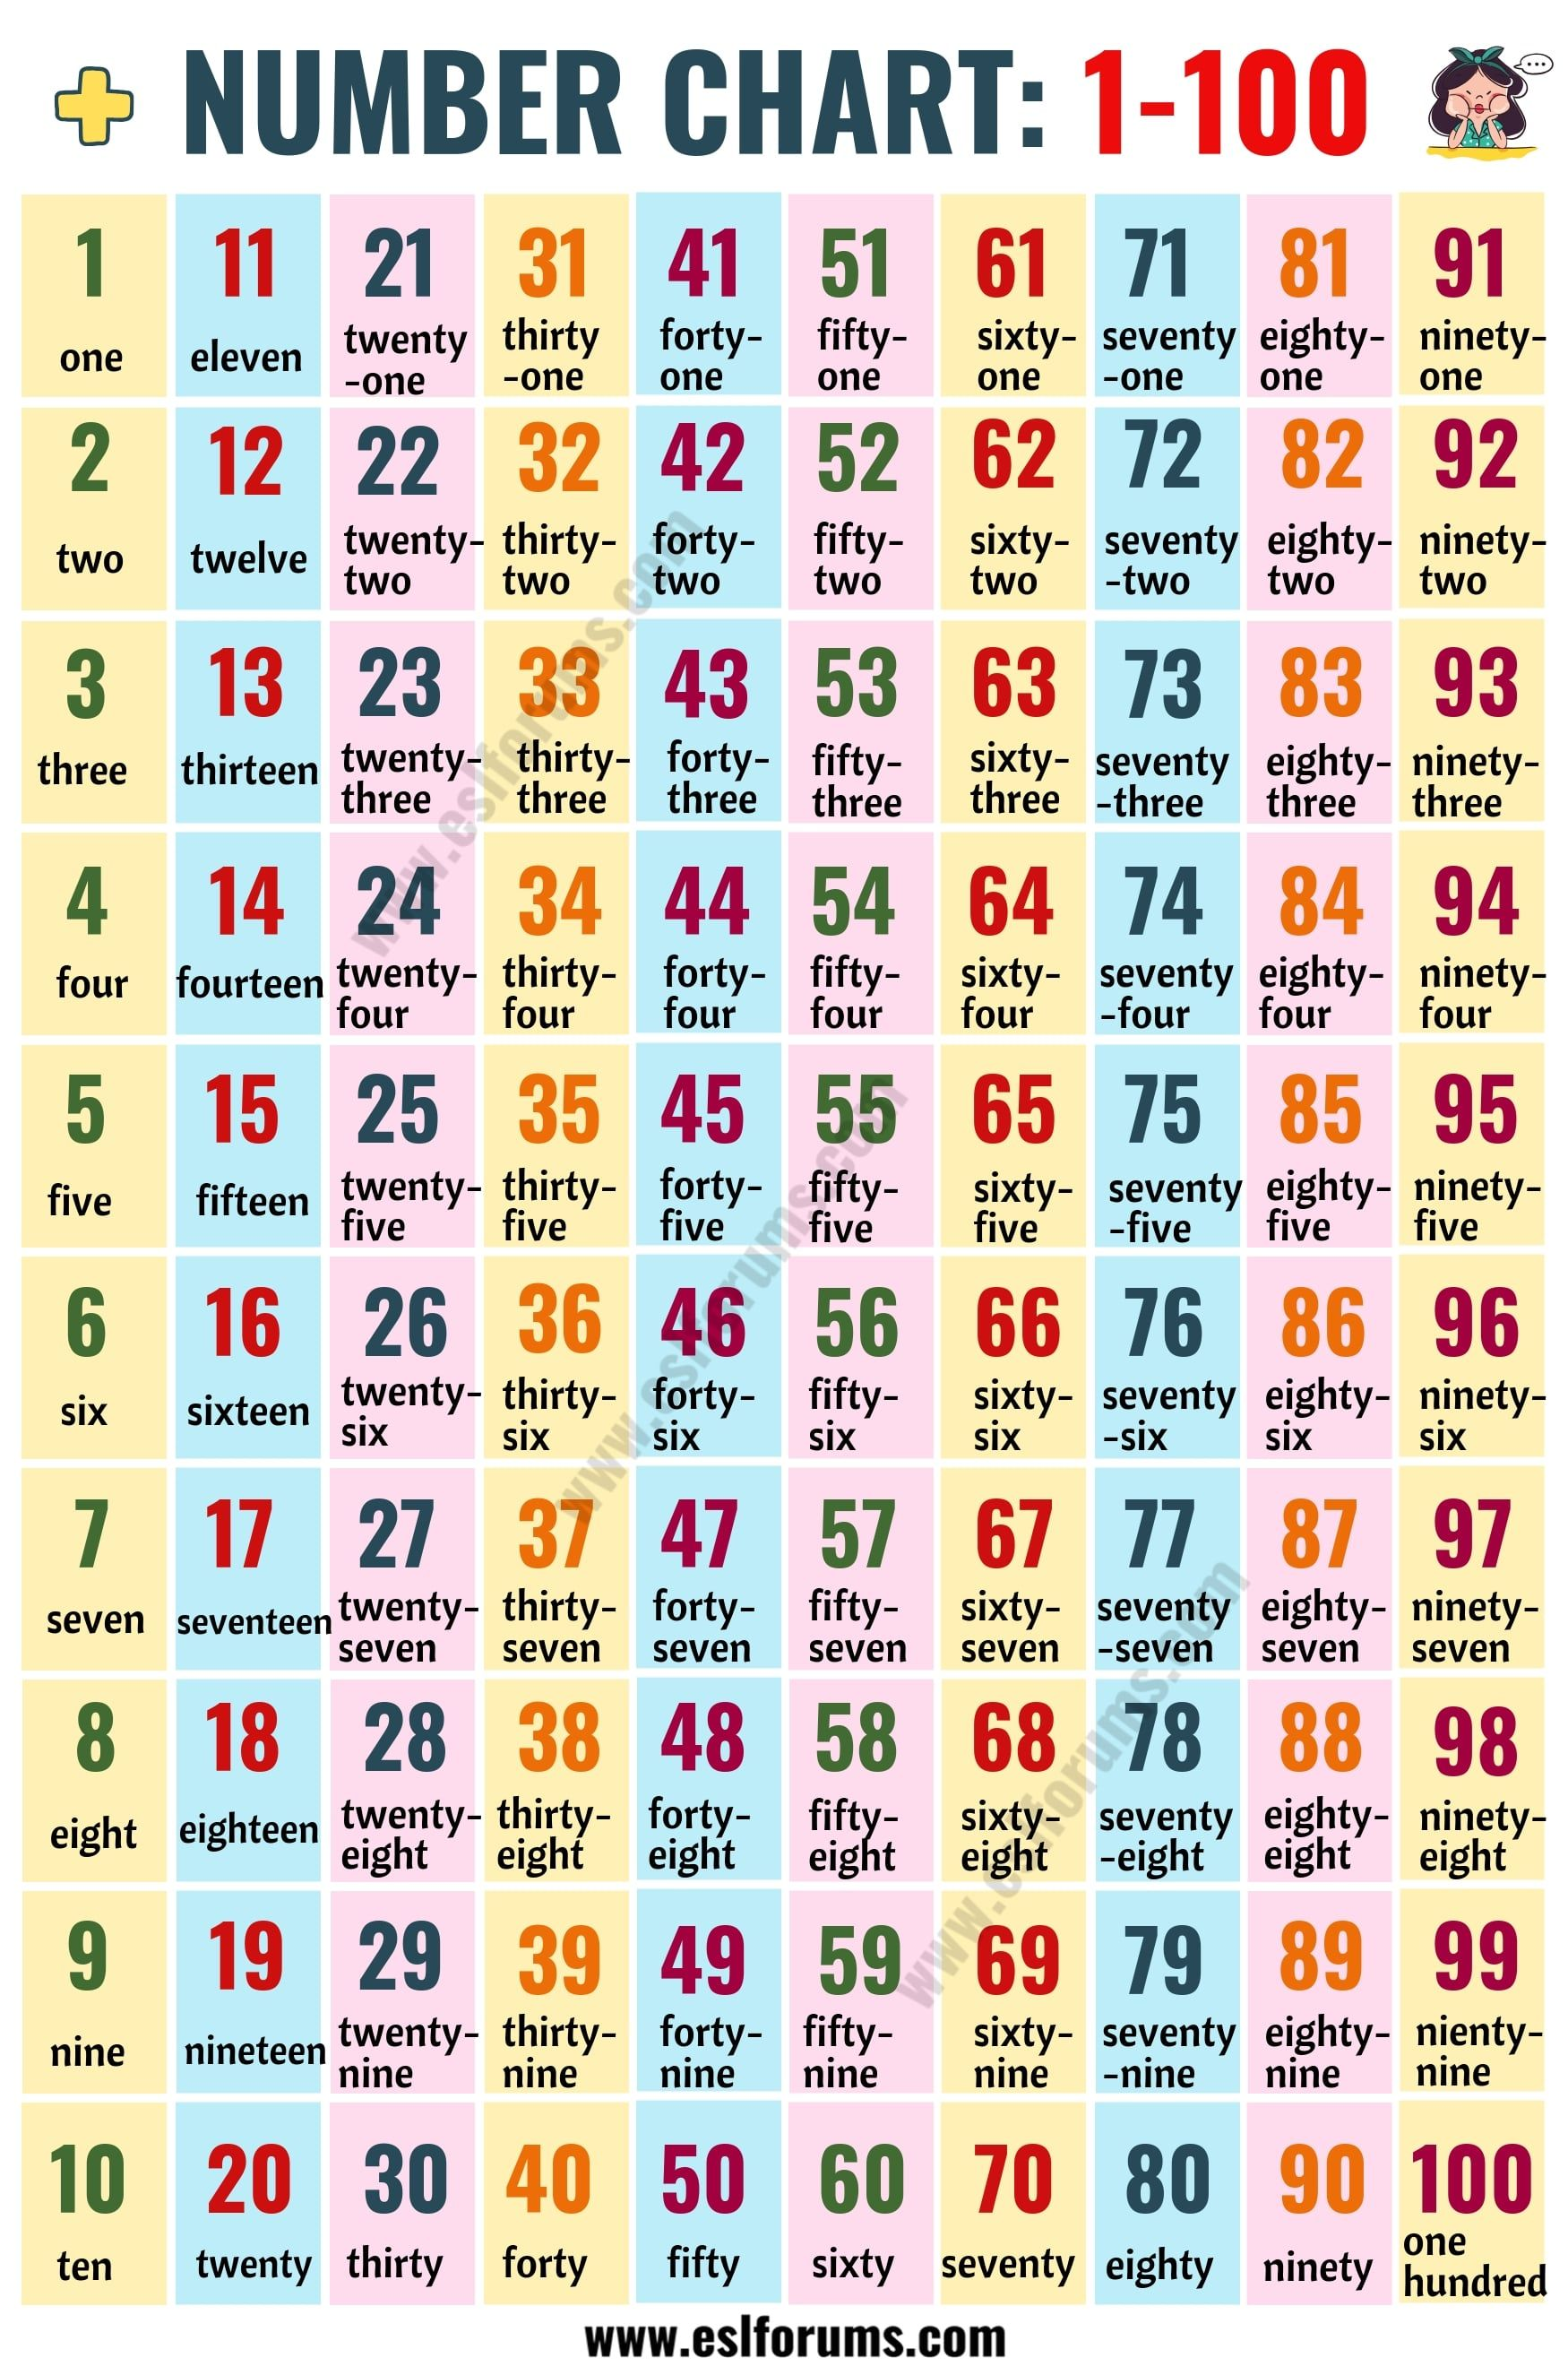 Hundreds Chart Number Chart 1 100 In English